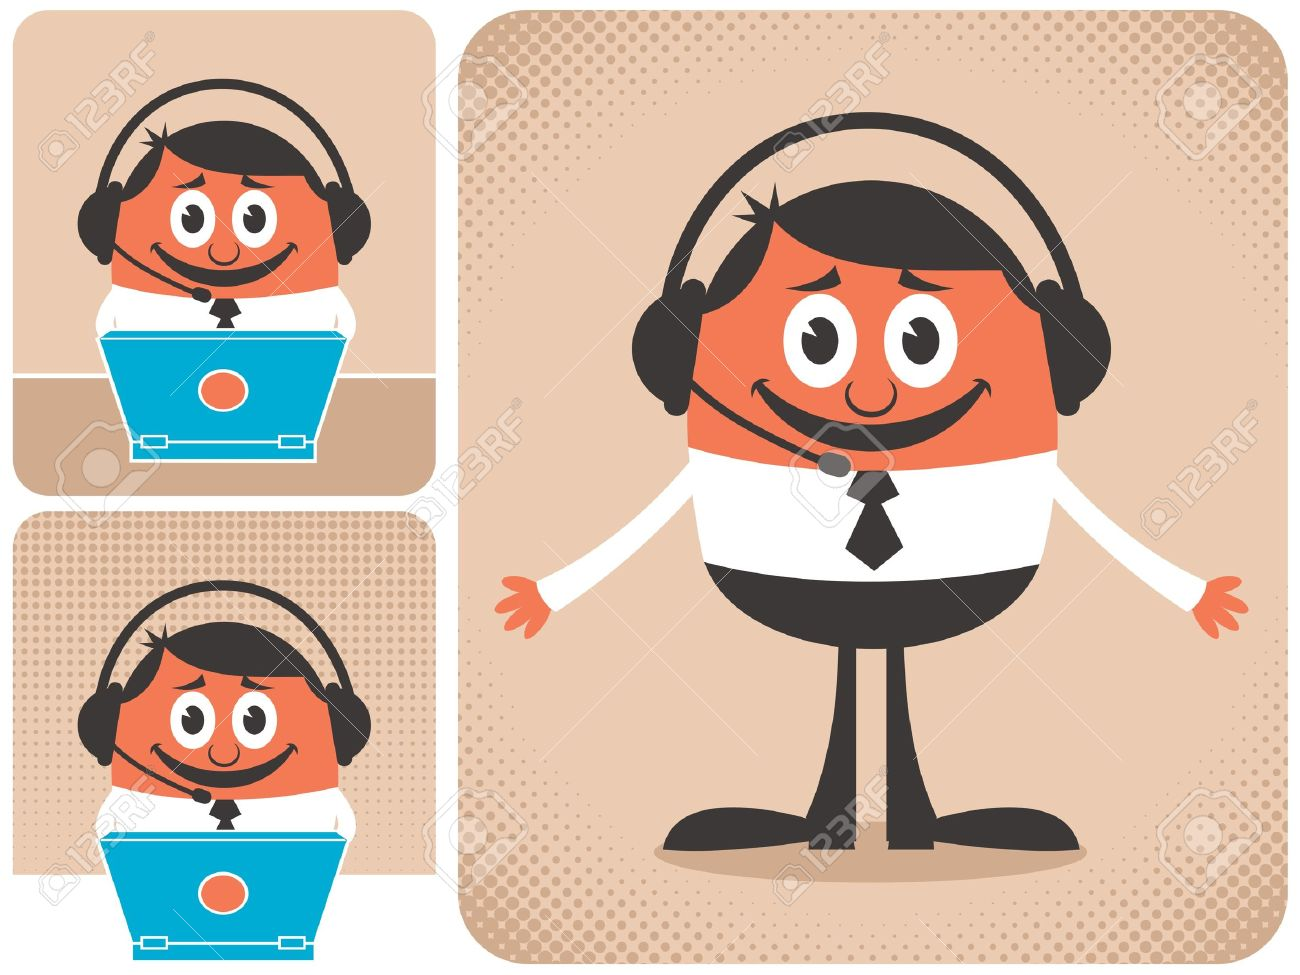 Technical support guy in 3 different versions. No transparency and gradients used. - 13264694